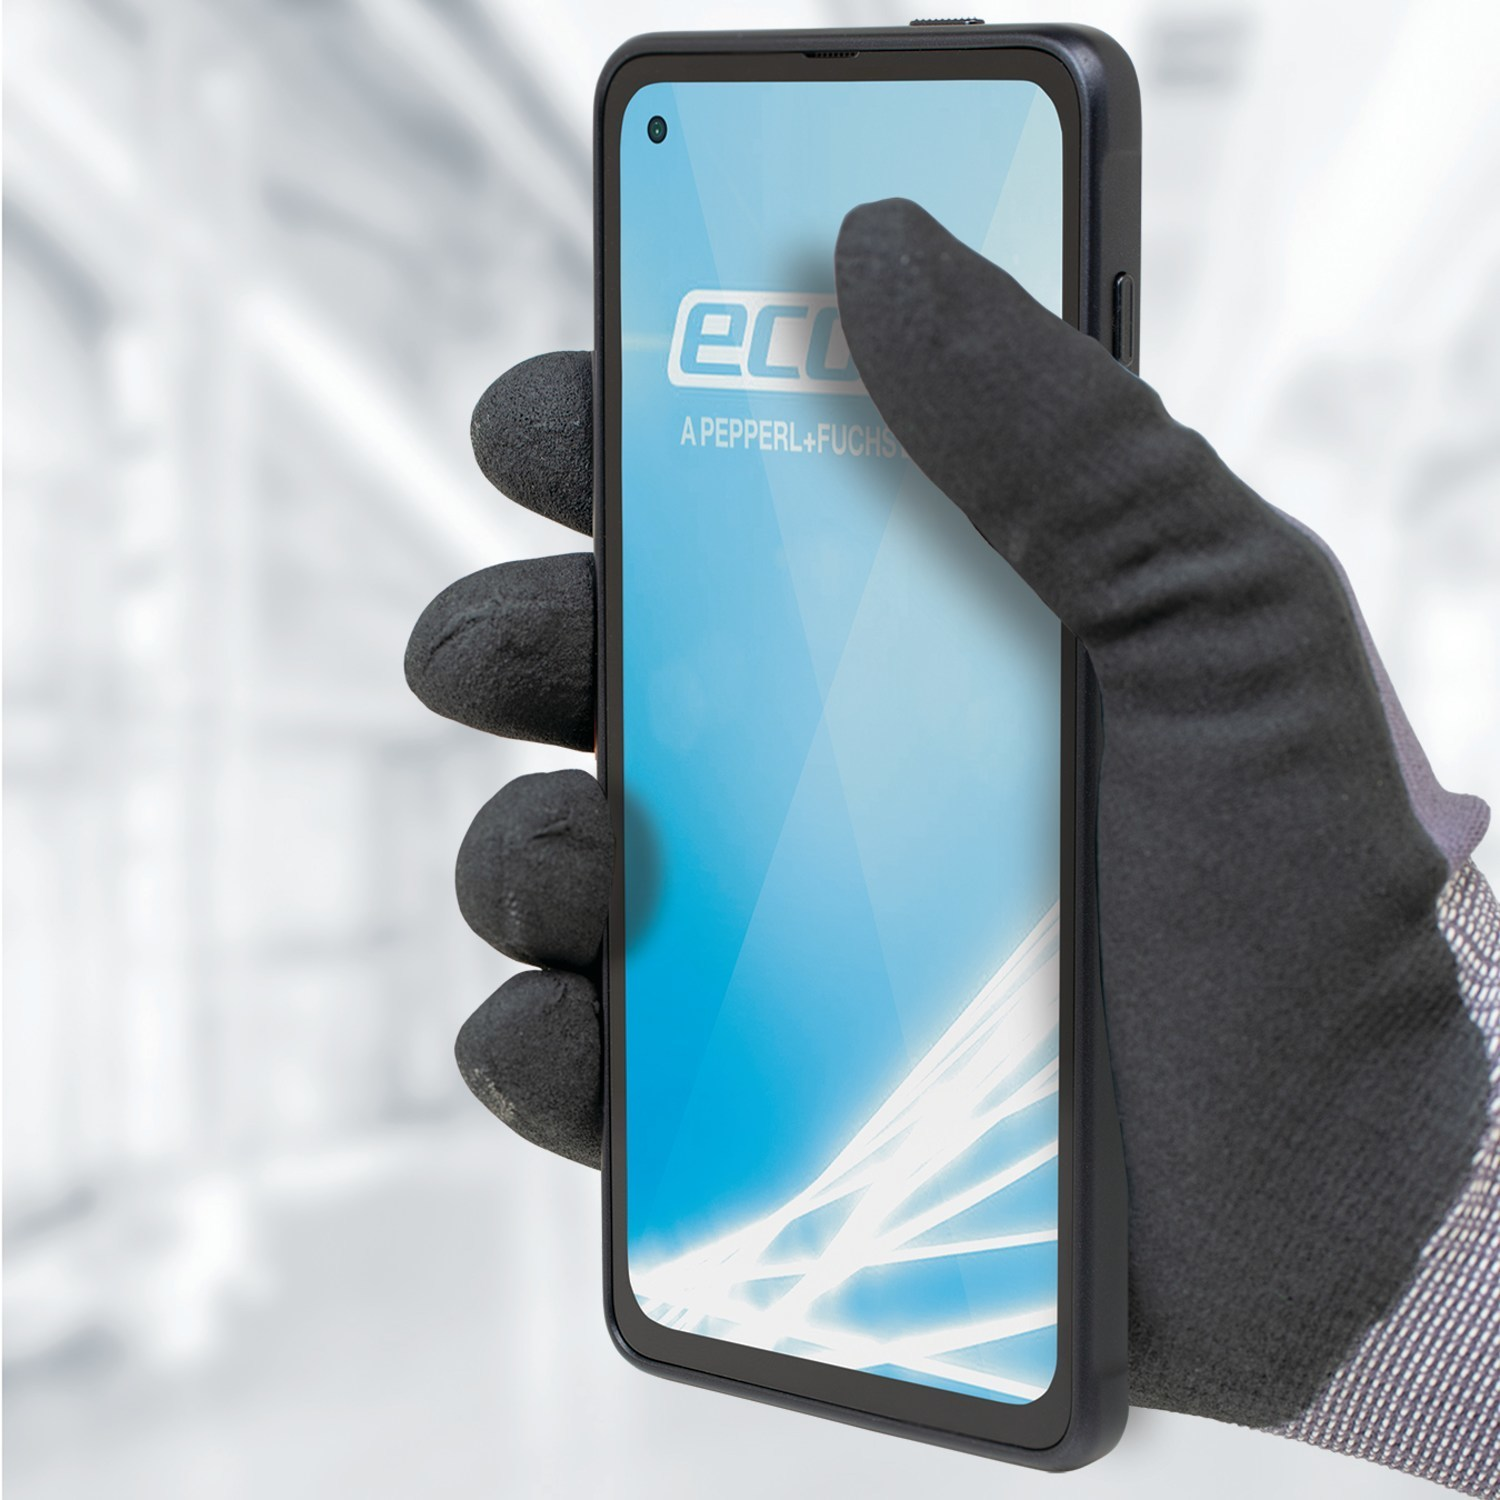 Pepperl+Fuchs Introduces New Division-2 Smartphone